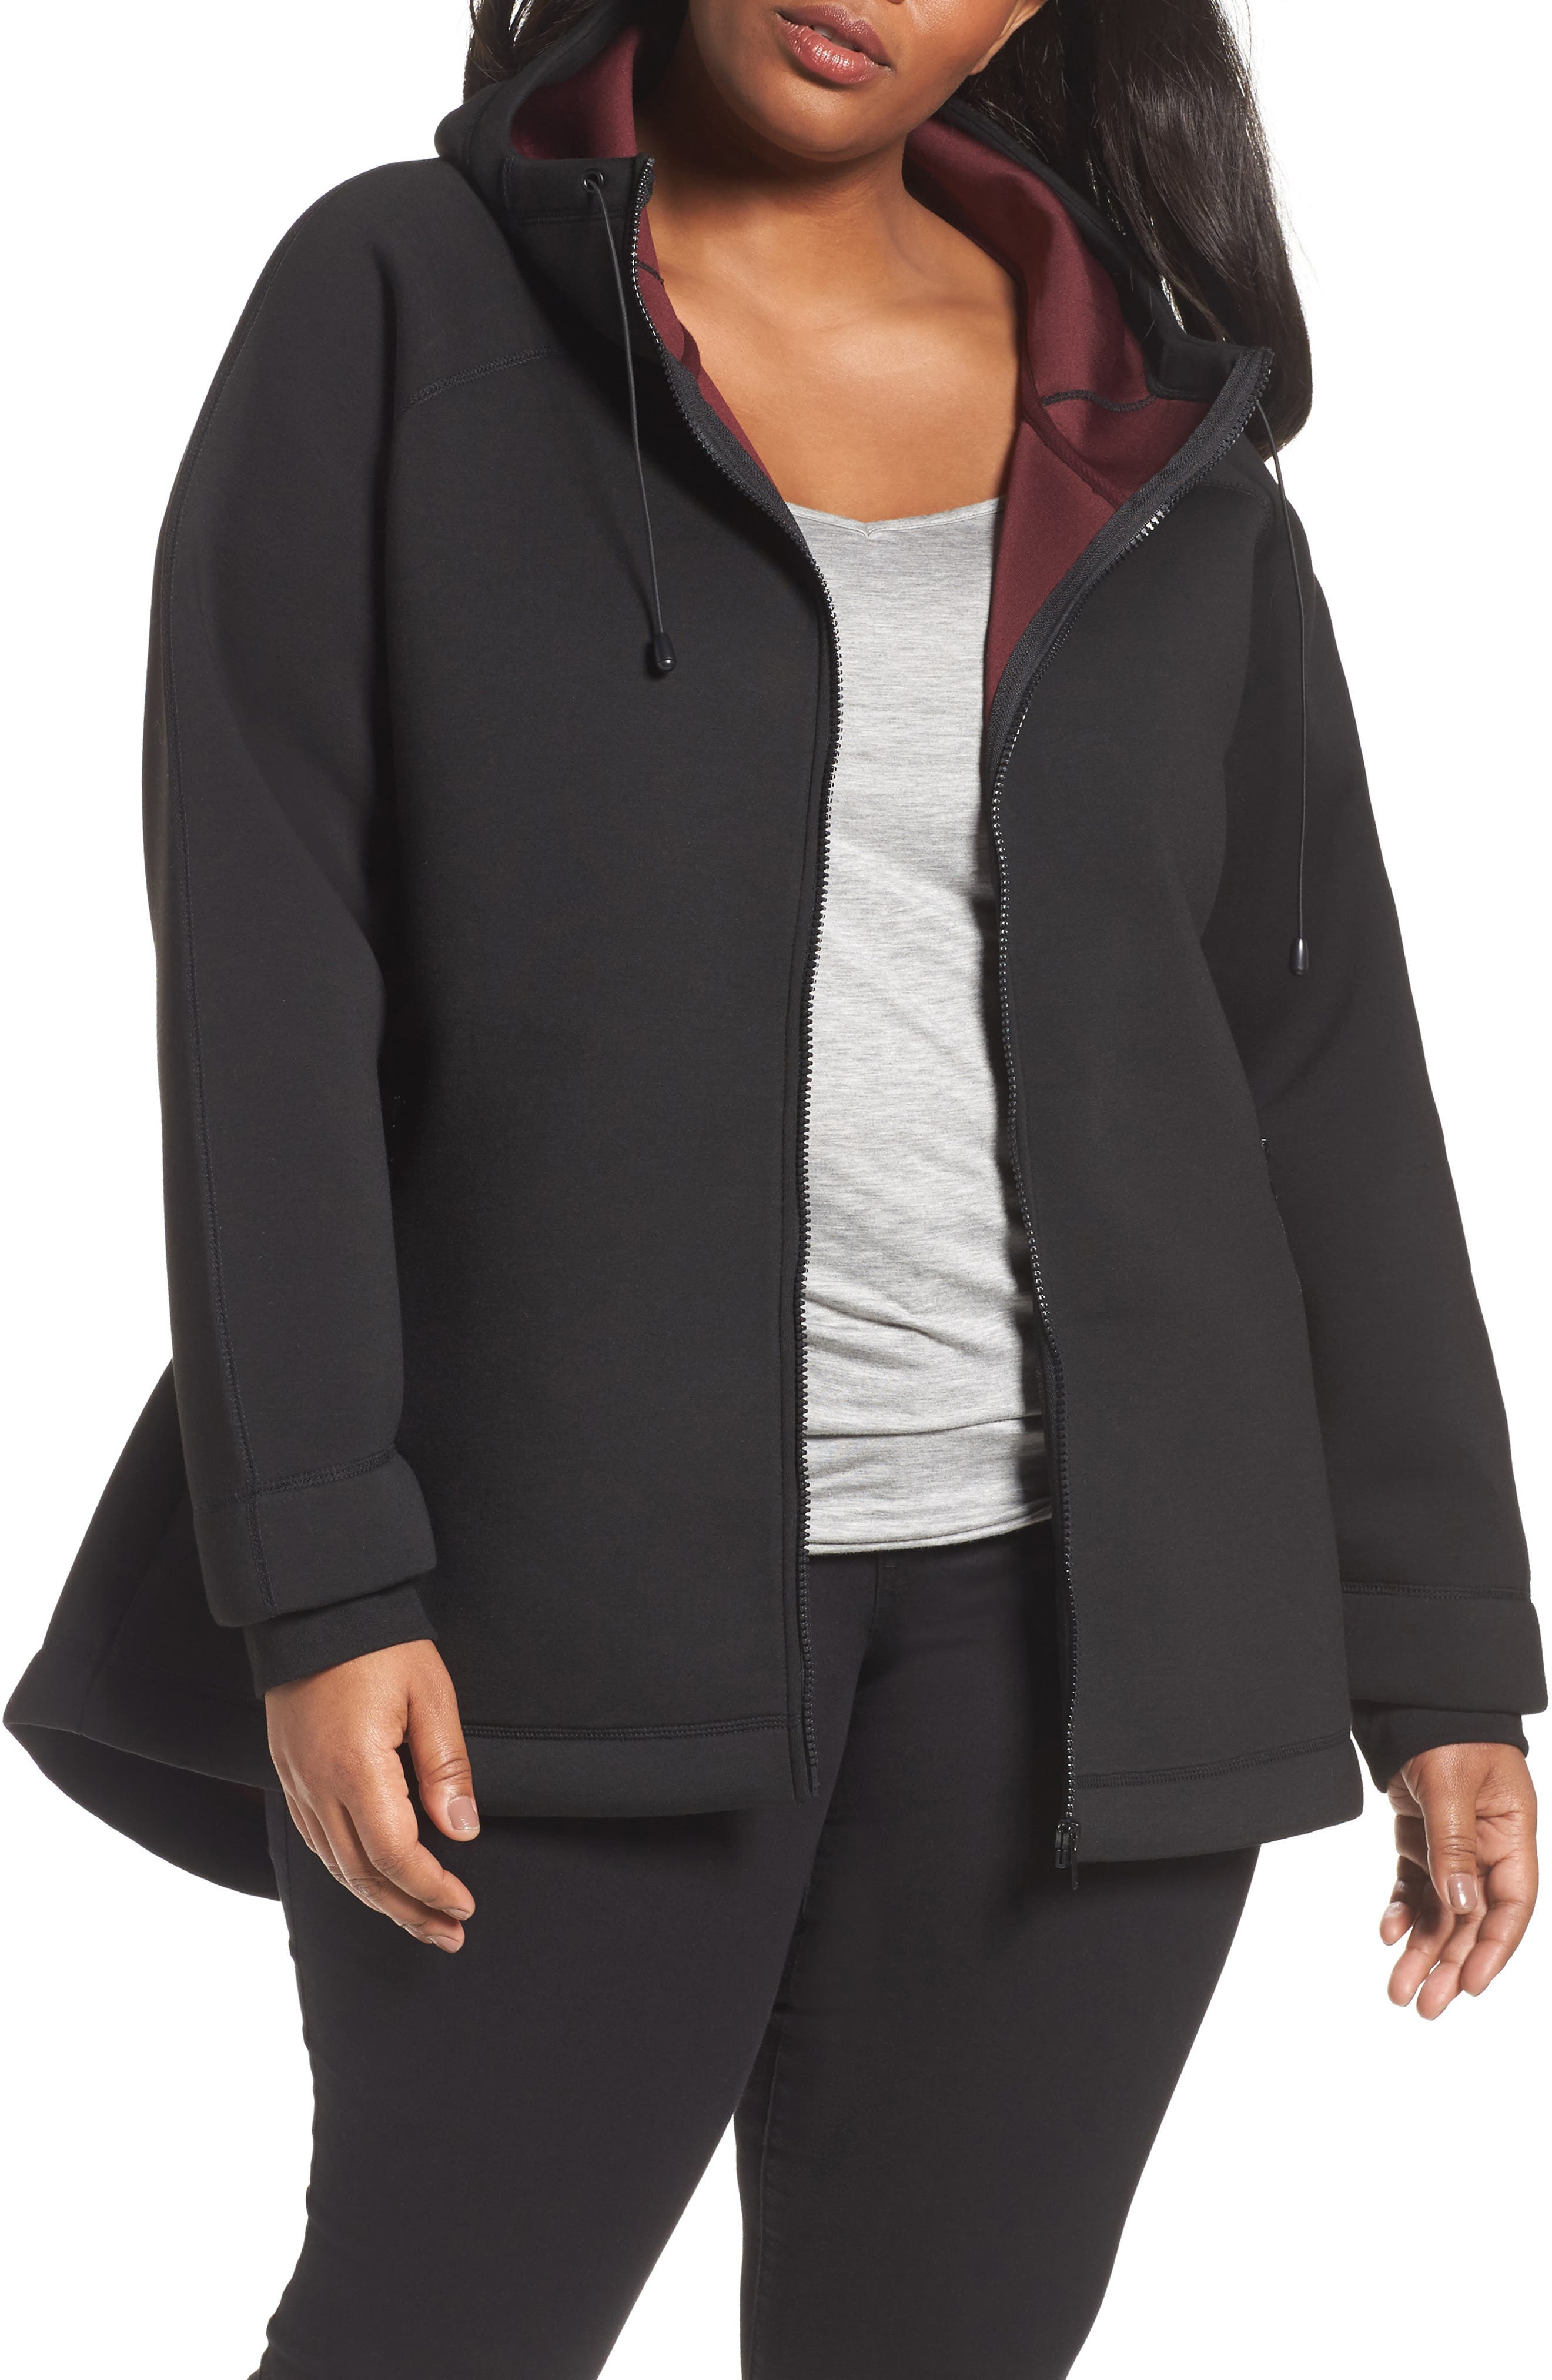 Mono Knit Drawstring Hooded Jacket,                         Main,                         color, Black/ Burgundy